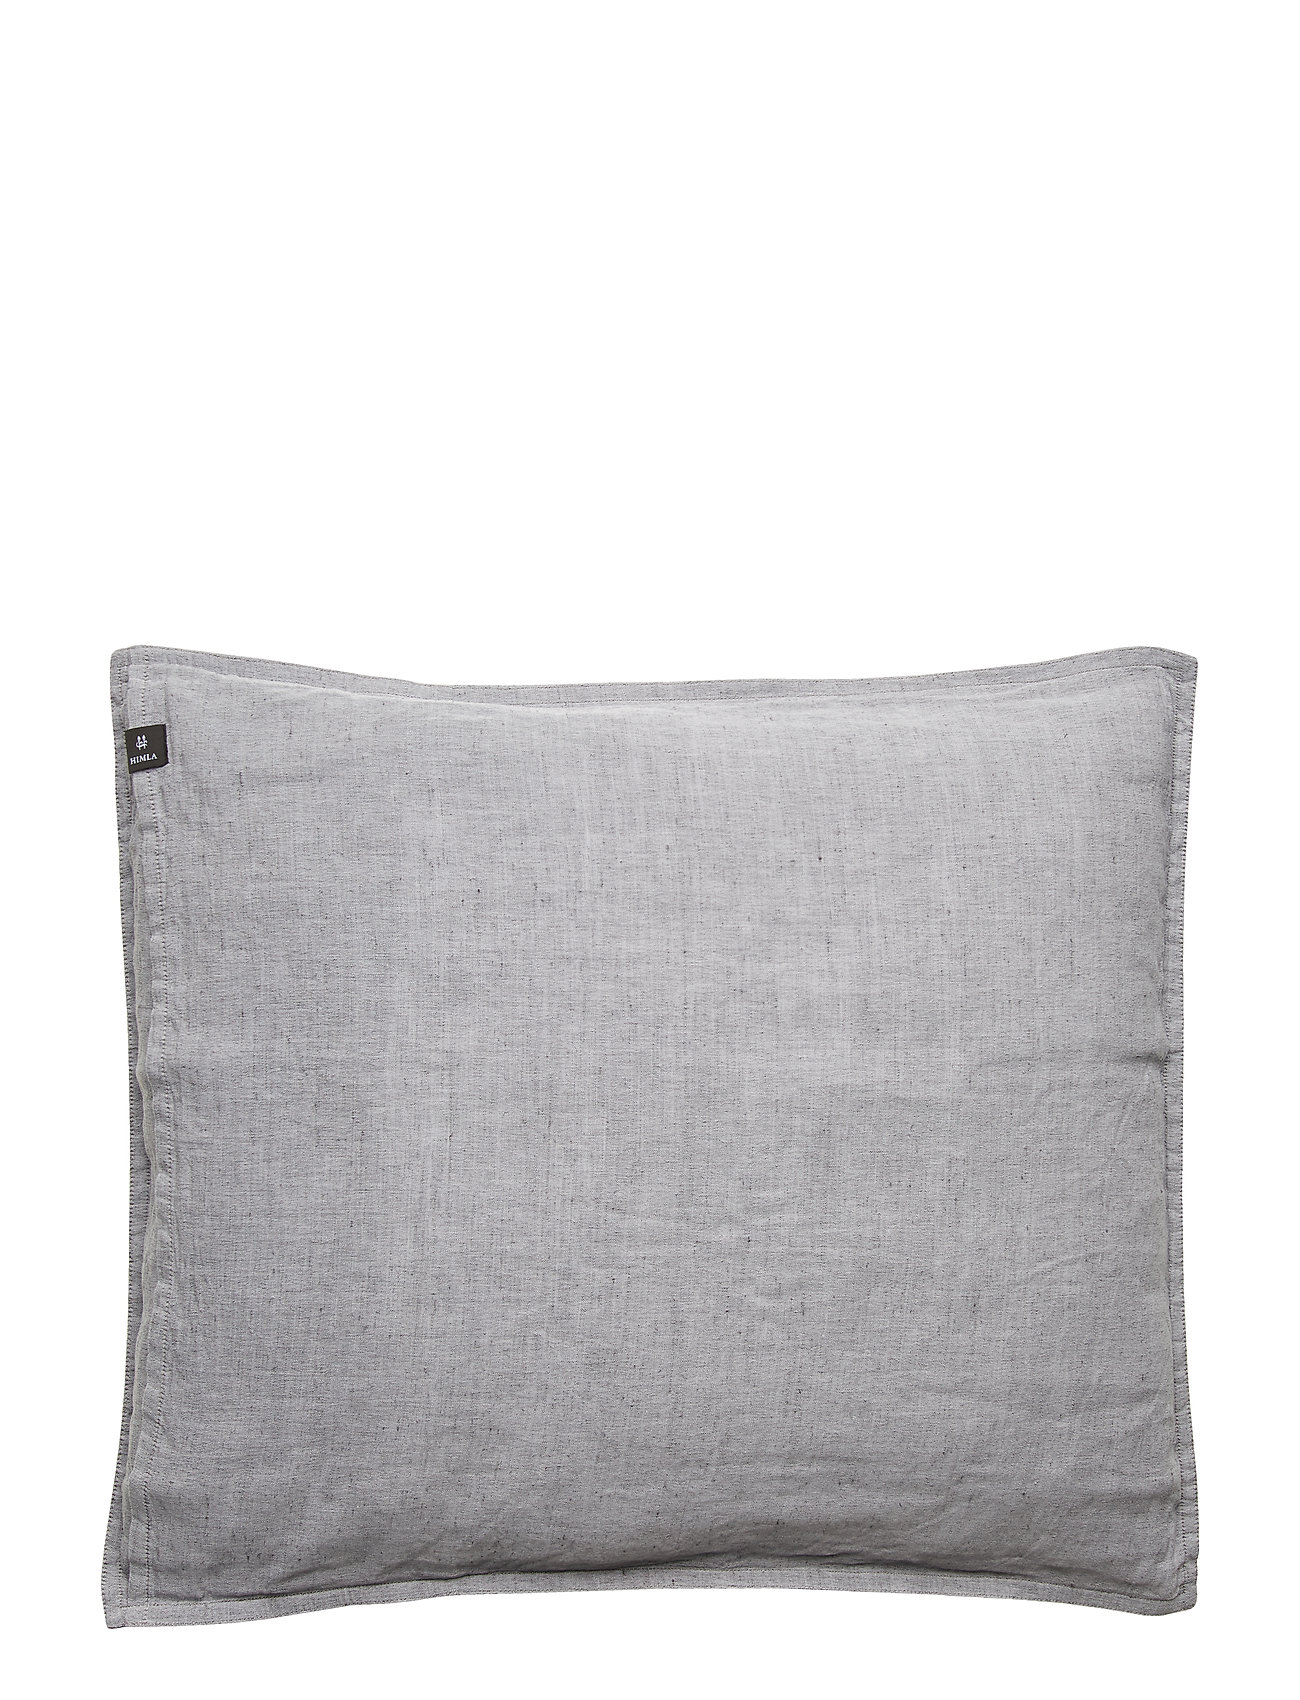 Himla Daylight Pillowcase - GRAPHITE